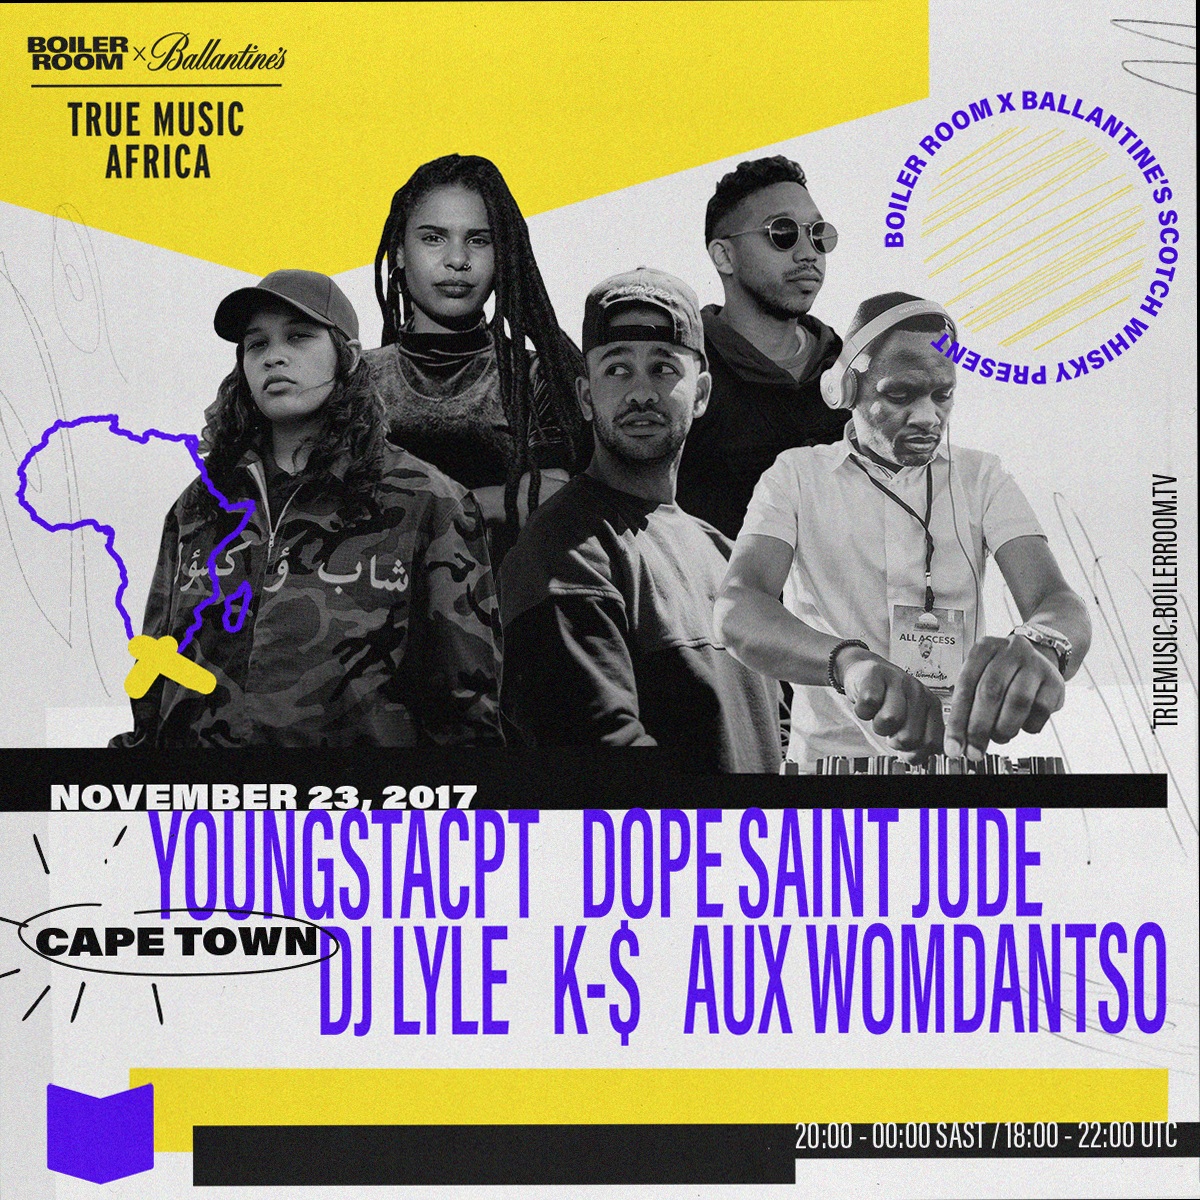 BOILER ROOM AND BALLANTINE'S BRING THEIR TRUE MUSIC PLATFORM TO AFRICA FOR A CROSS-CONTINENT TOUR Copy of SQUARE  1